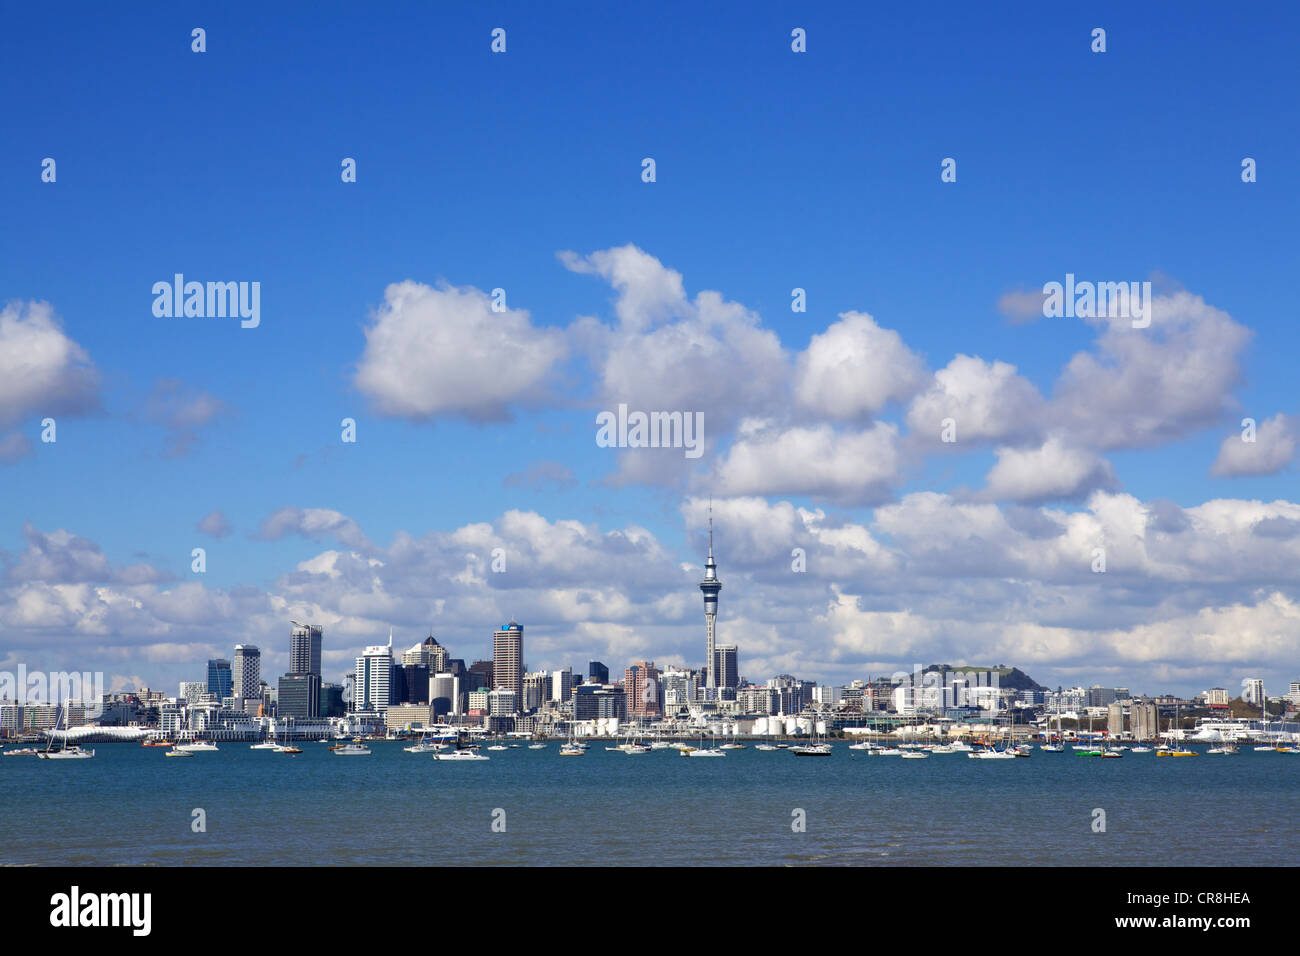 Auckland harbour skyline, New Zealand - Stock Image